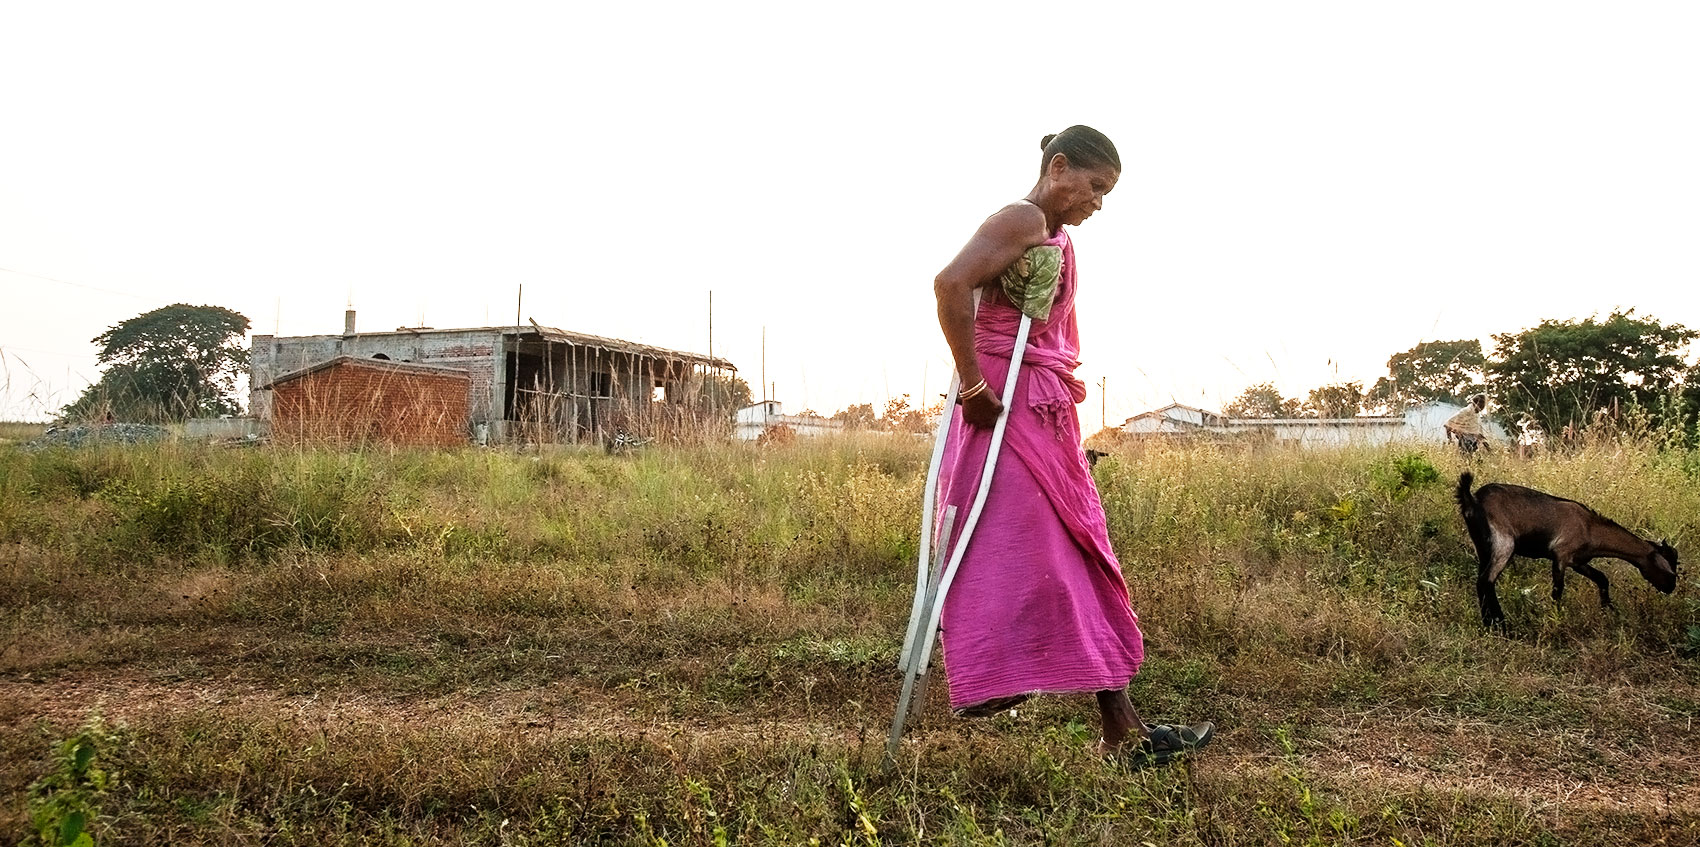 A leprosy patient who has lost a leg